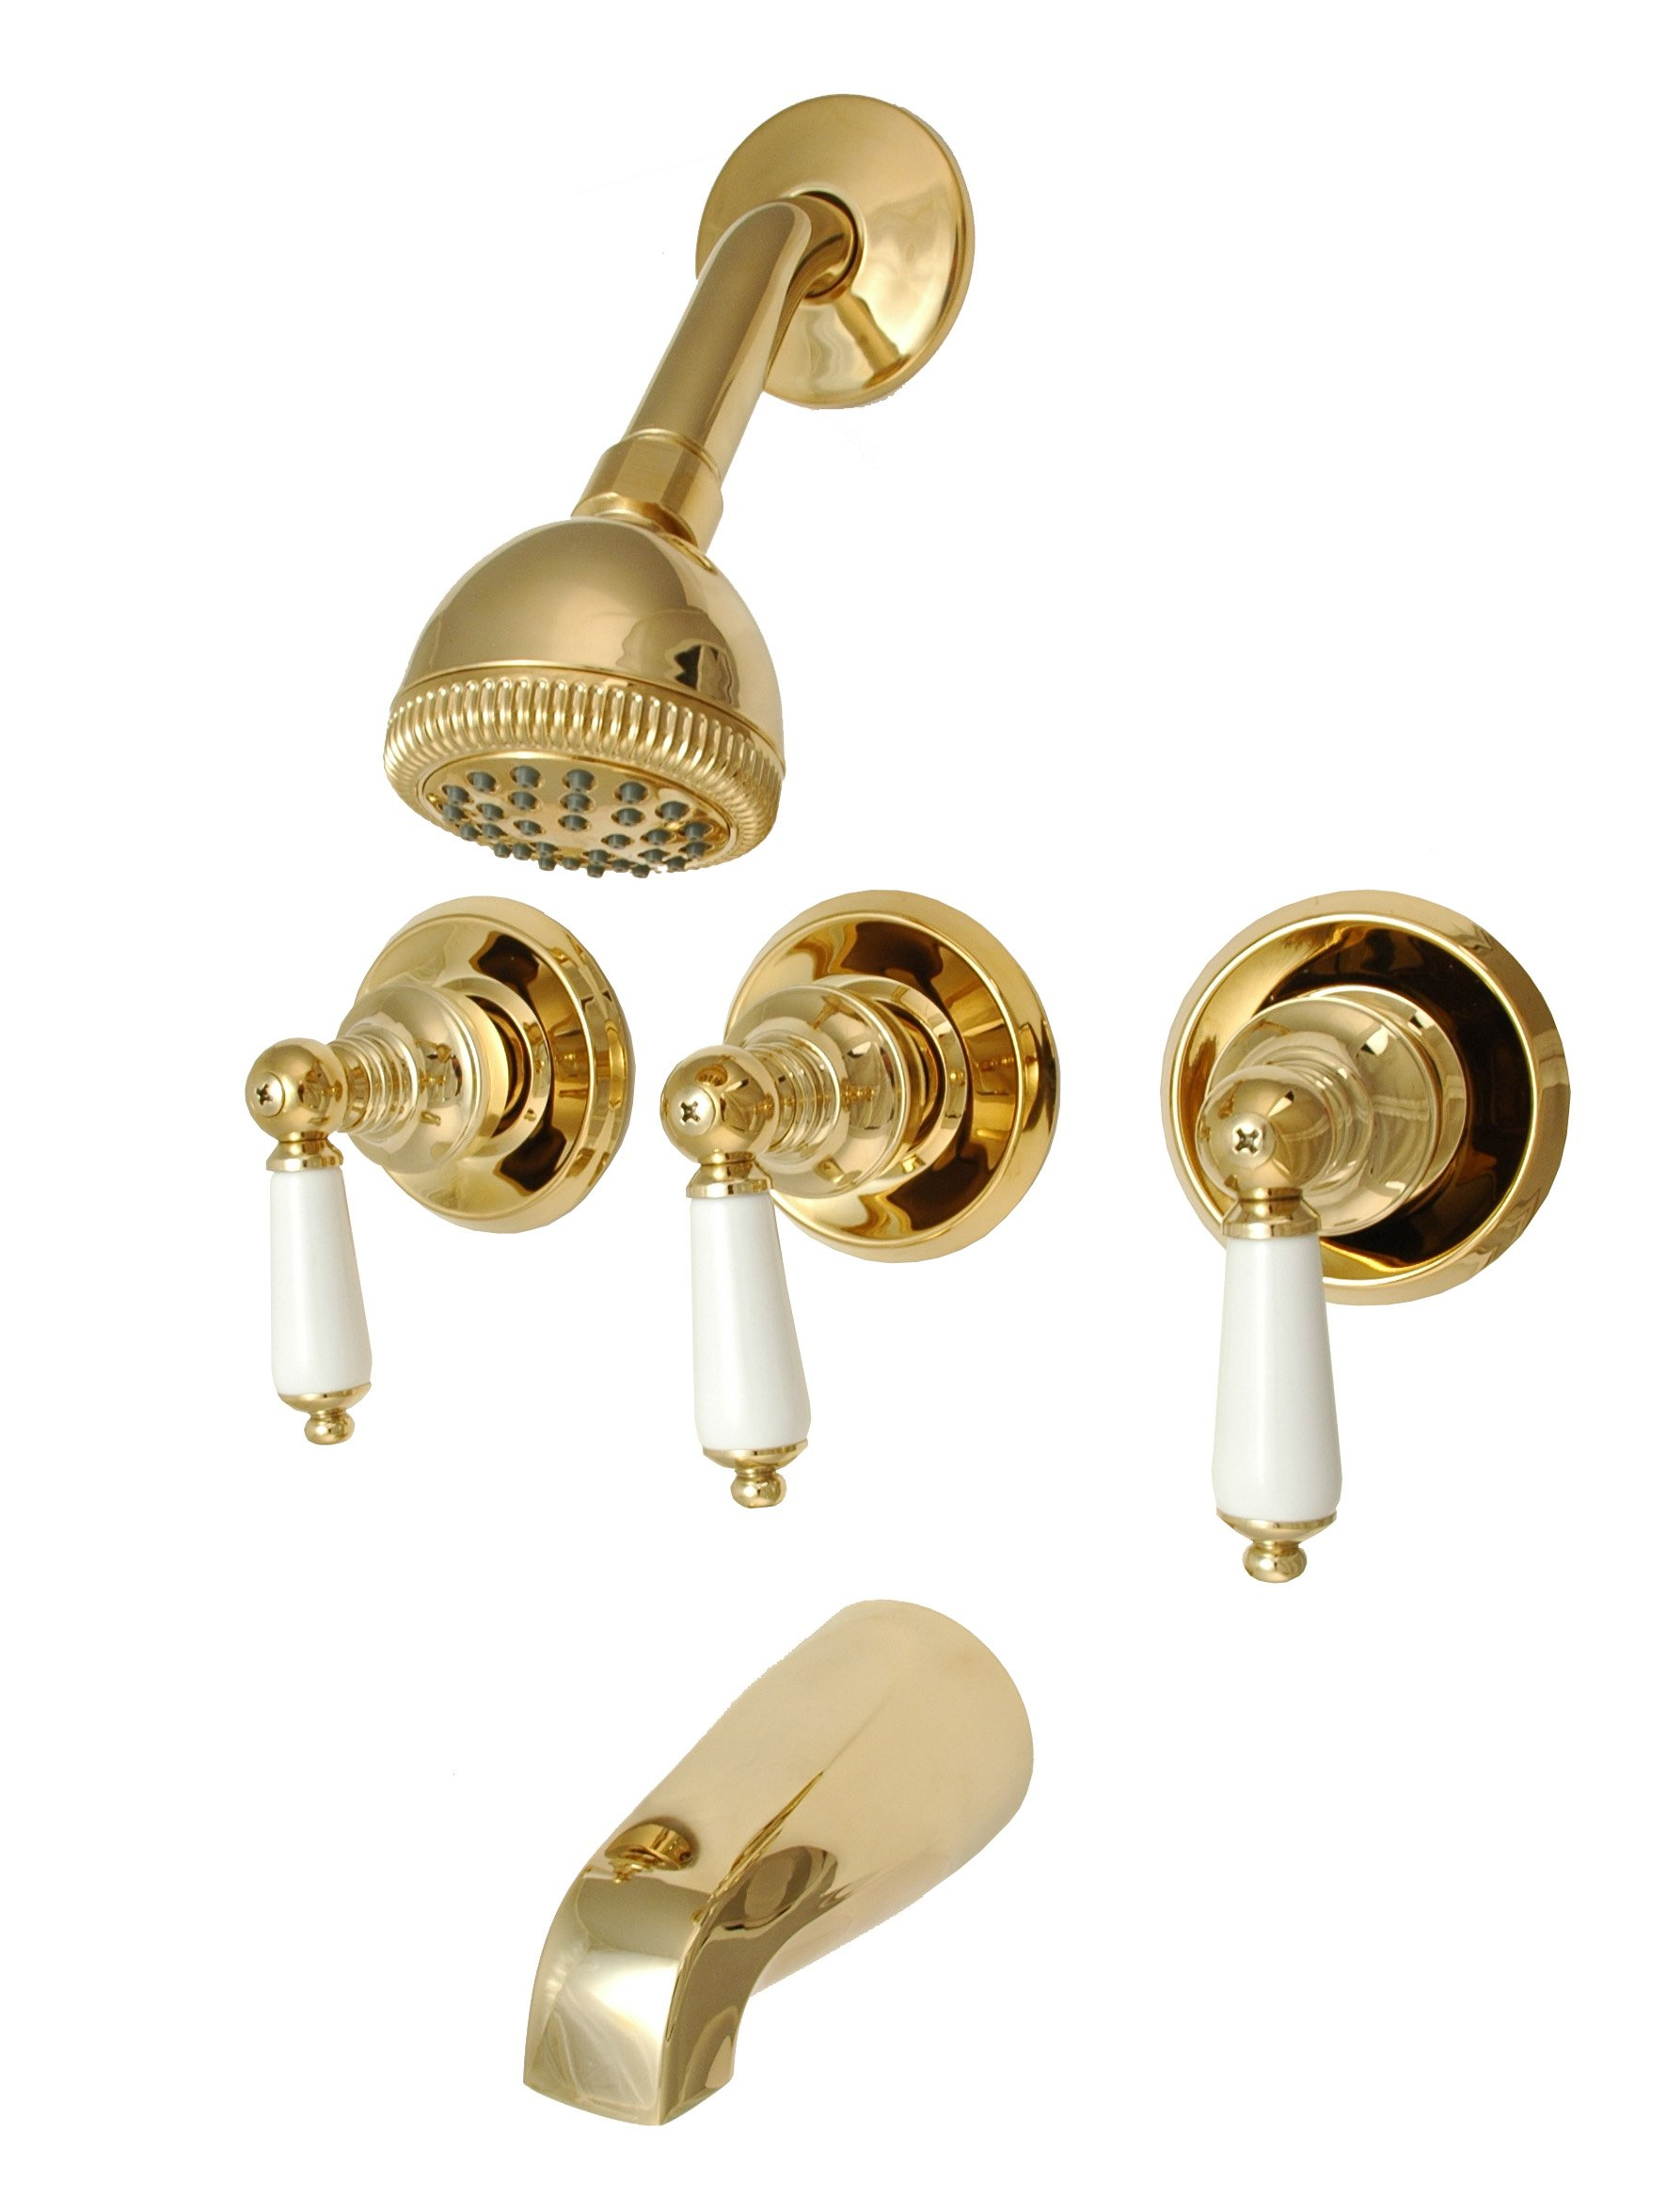 8'' Three-handle Tub and Shower Faucets, Polish Brass Finish, Washerless, Porcelain Handle - Plumb USA 34584pvd (Polish Brass)